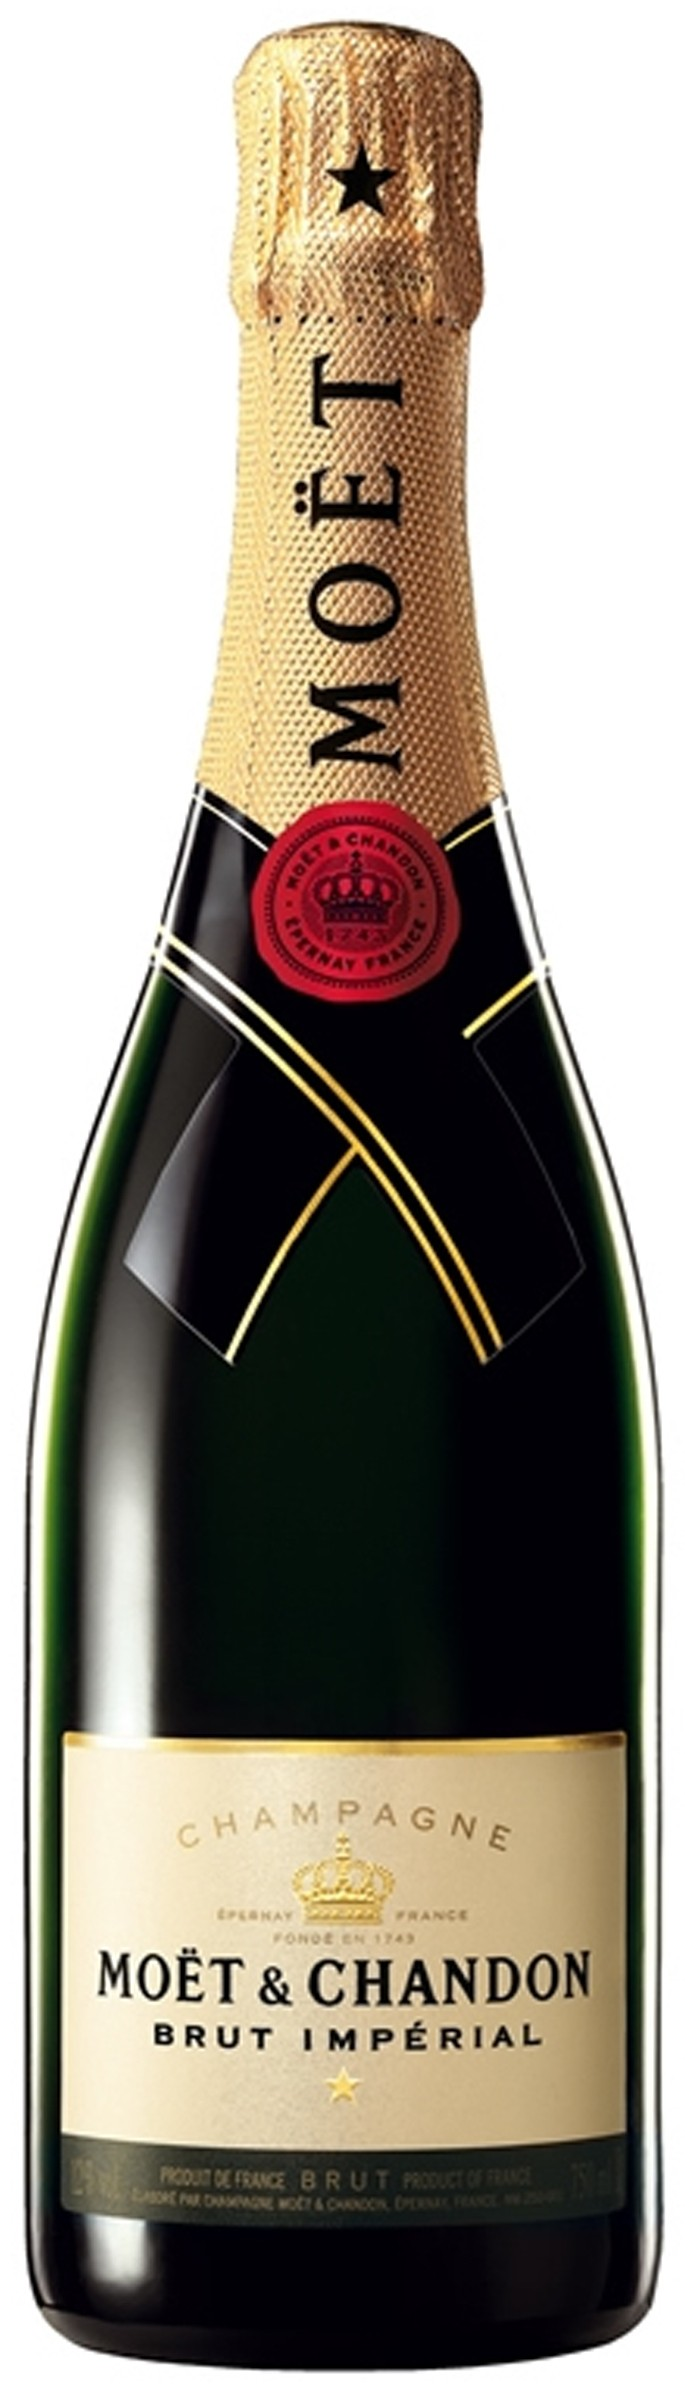 MOËT & Chandon - Brut Imperial